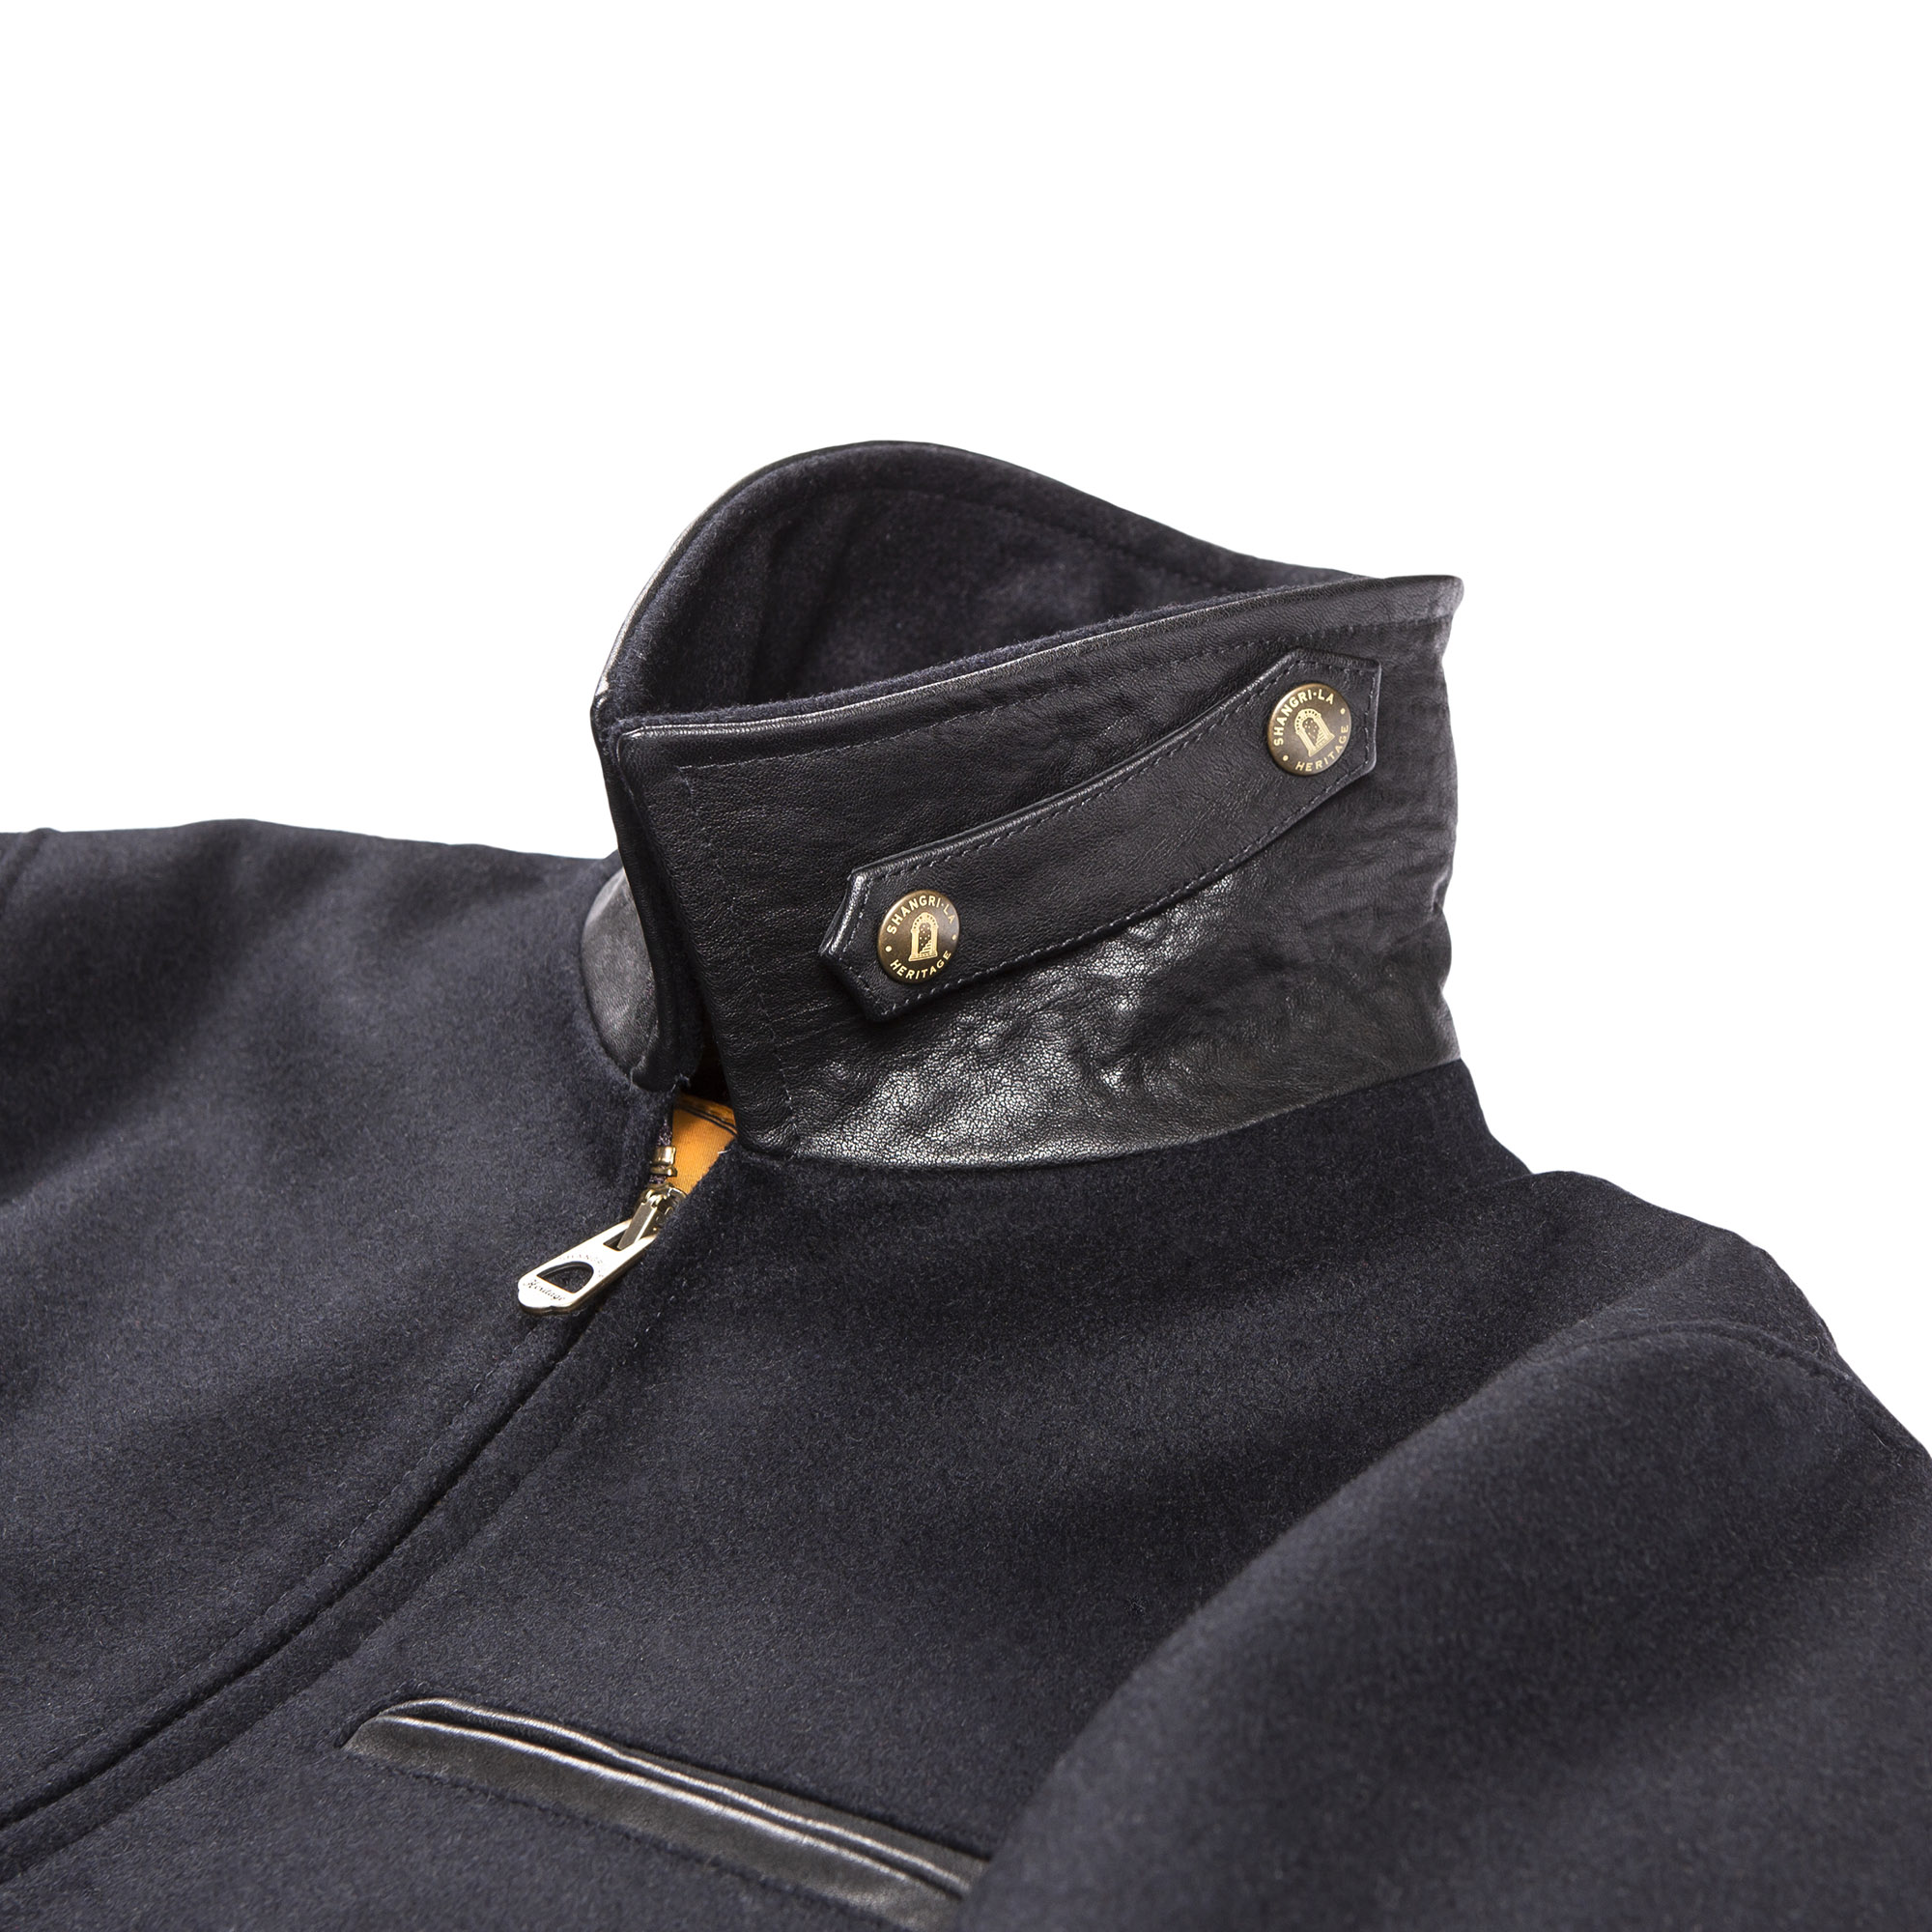 shangri-la-heritage-varenne-navy-blue-wool-jacket-still-life-collar-tab-open